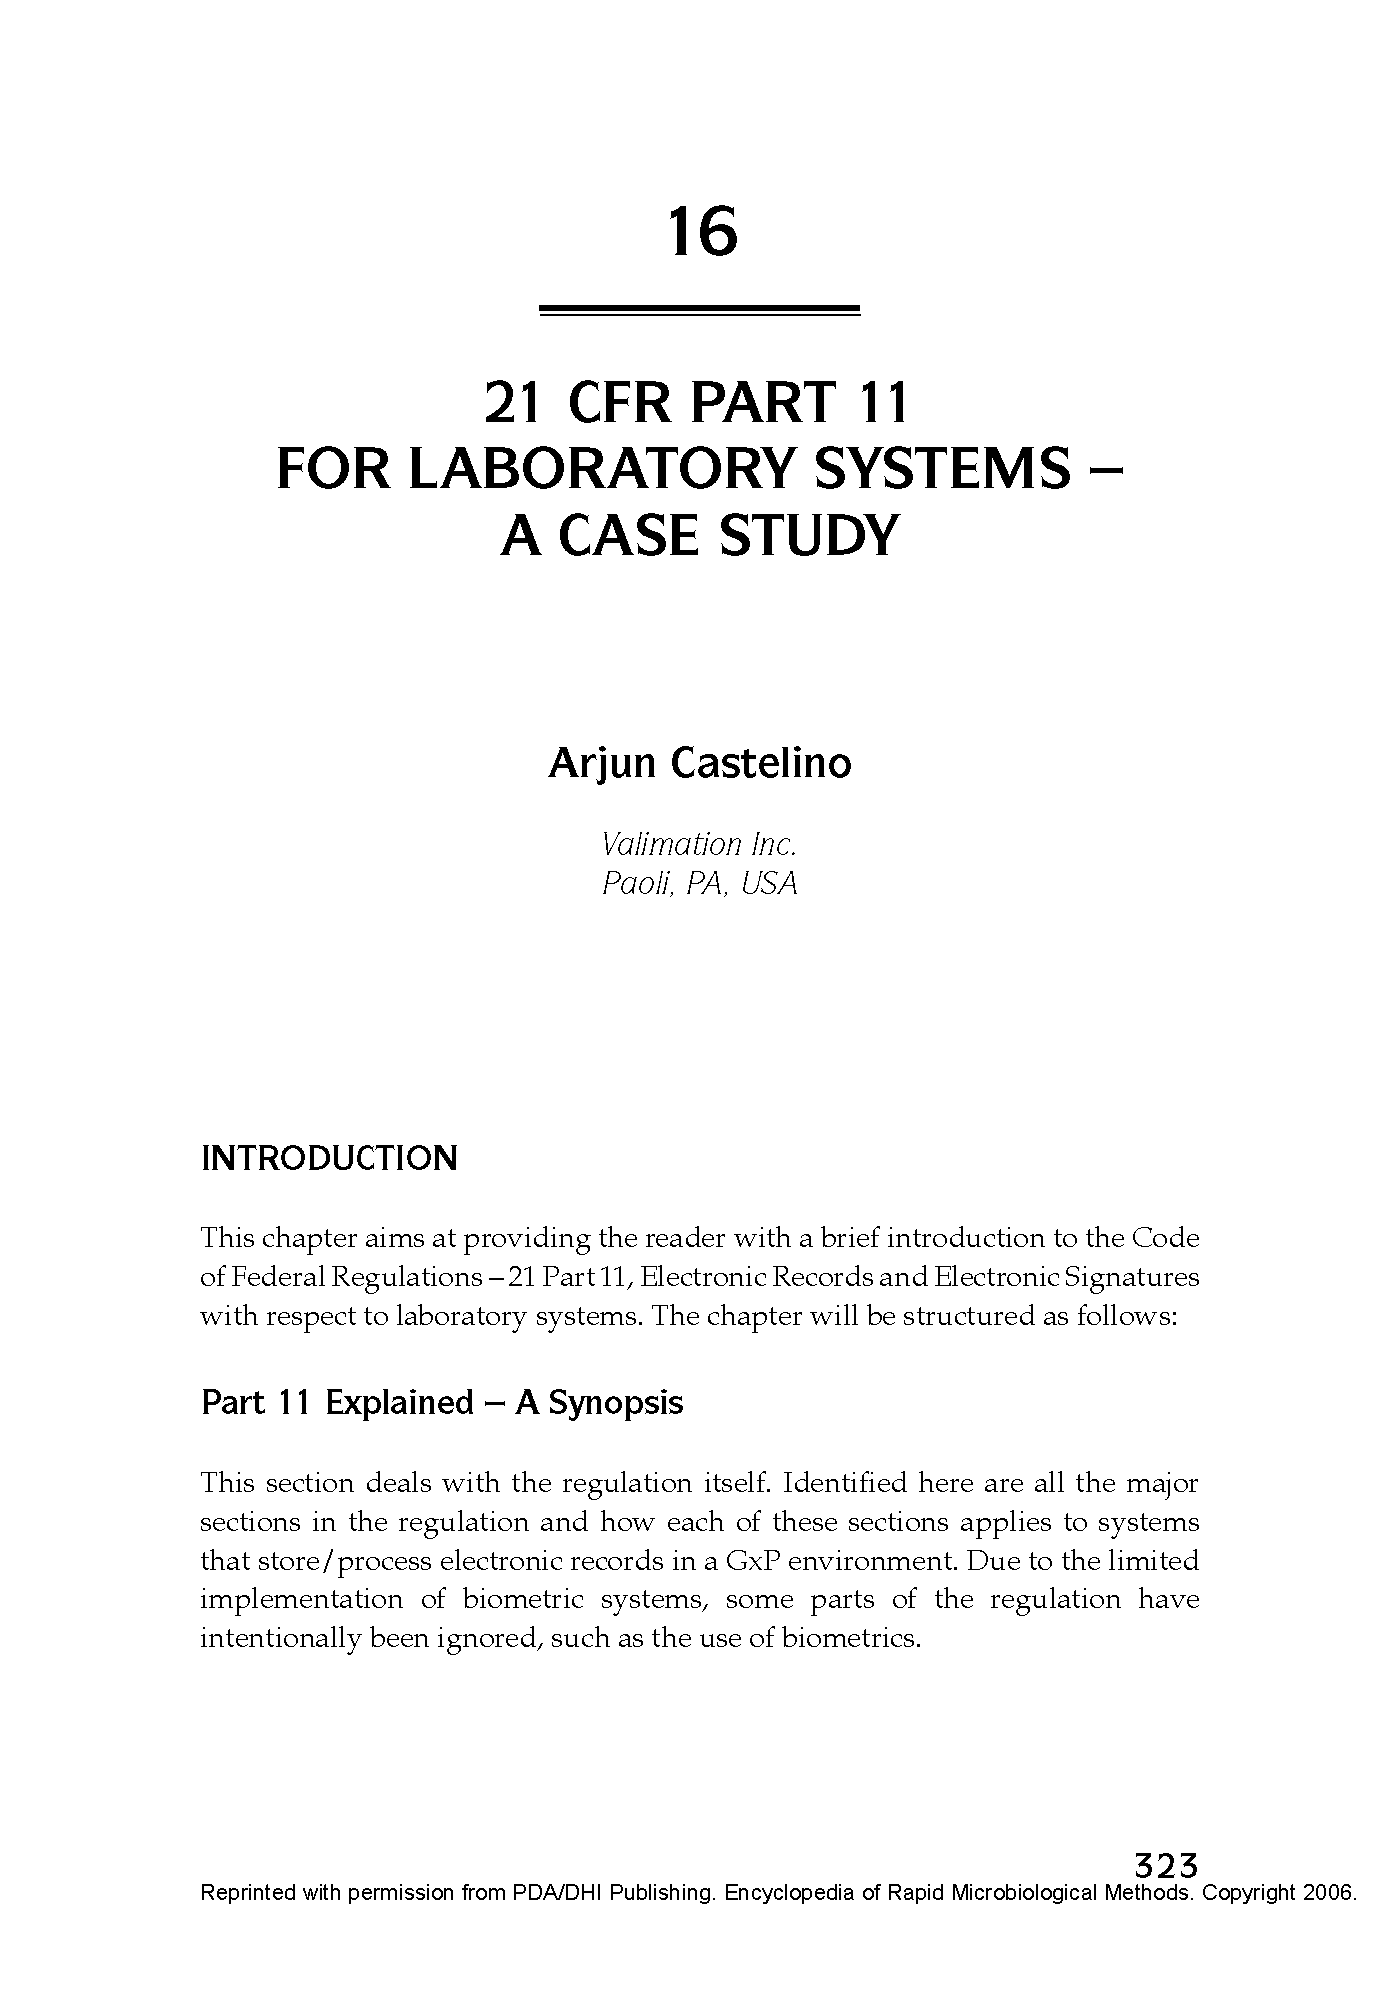 chapter 21 case study